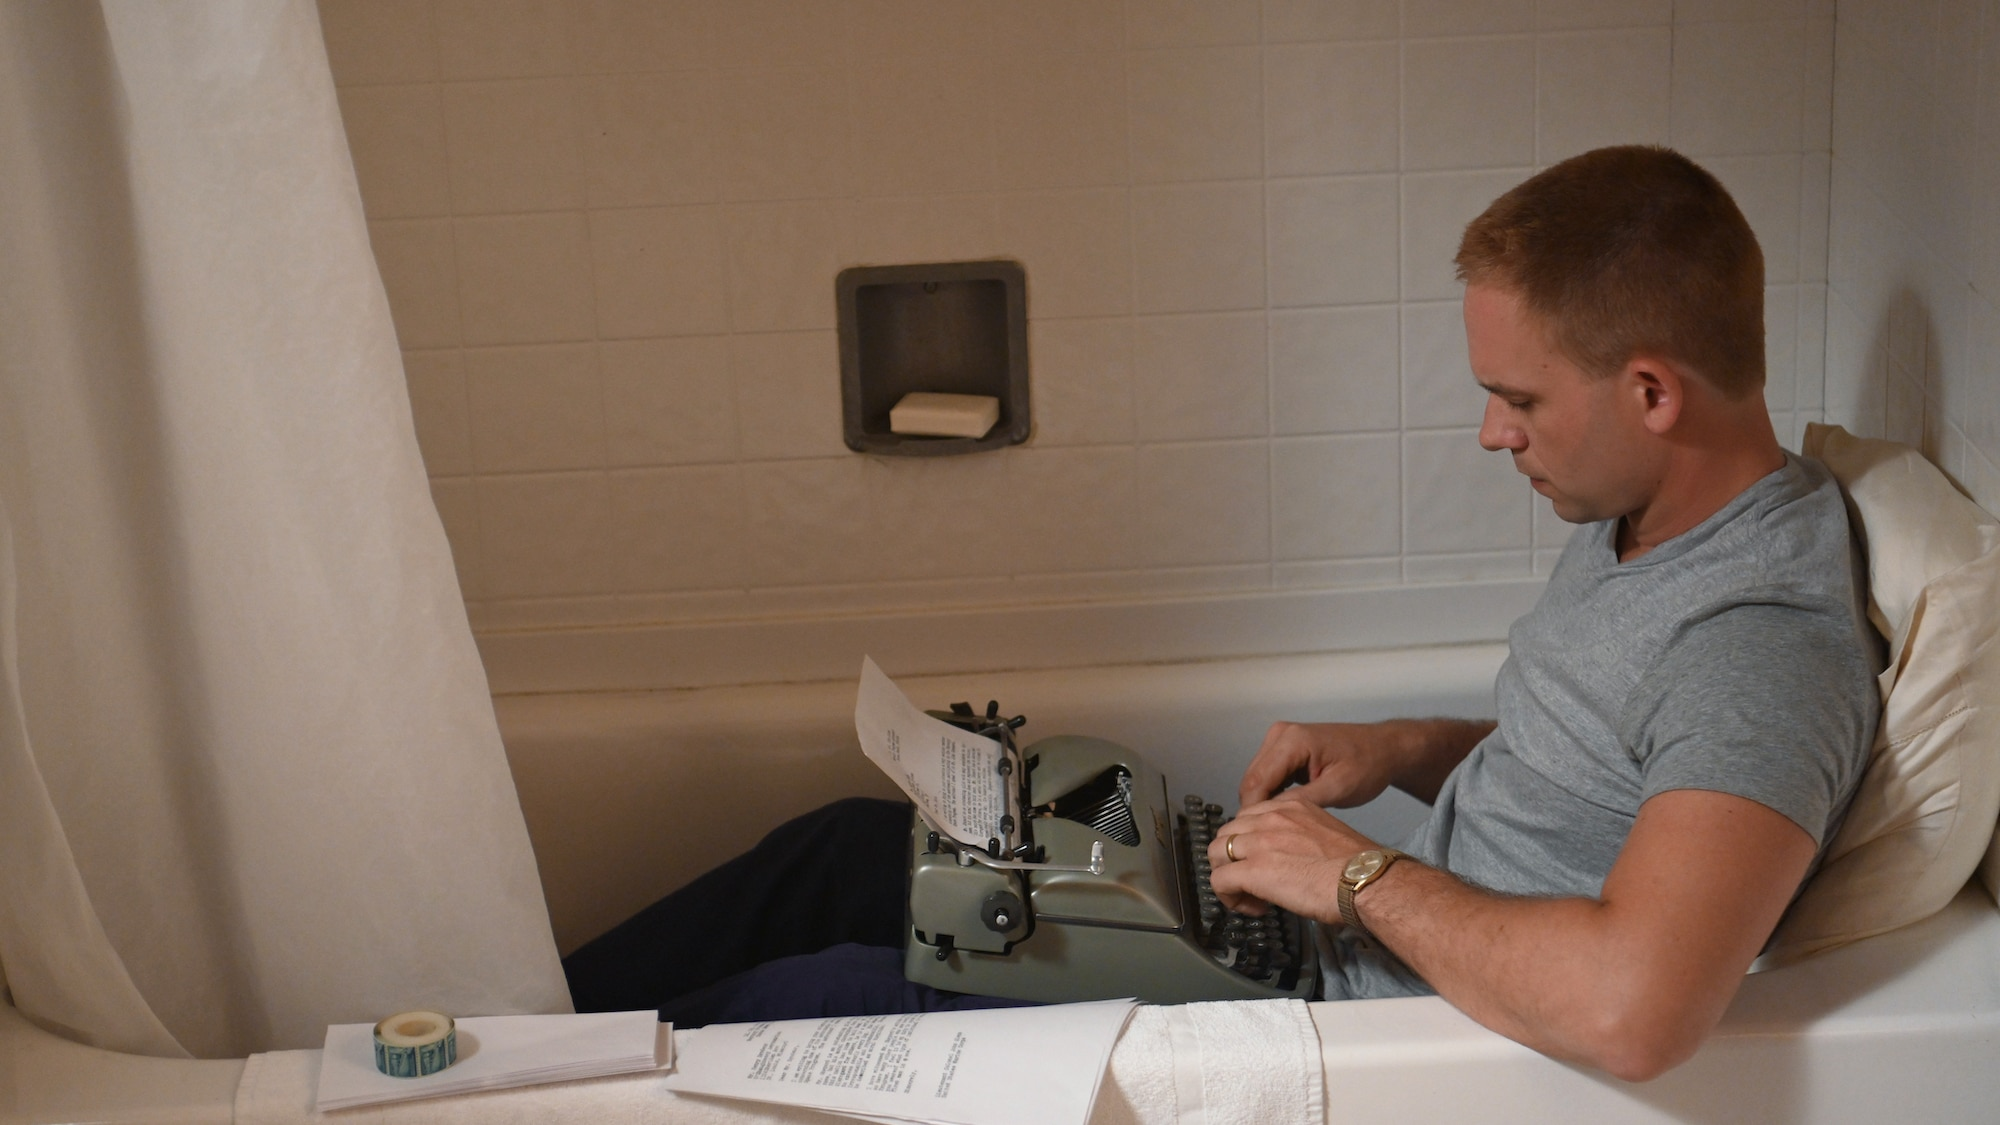 John Glenn, played by Patrick J. Adams, writes a letter in the tub to expose the questionable conduct of a fellow astronaut which could jeopardize the future of the space program in National Geographic's THE RIGHT STUFF streaming on Disney+. (National Geographic/Gene Page)